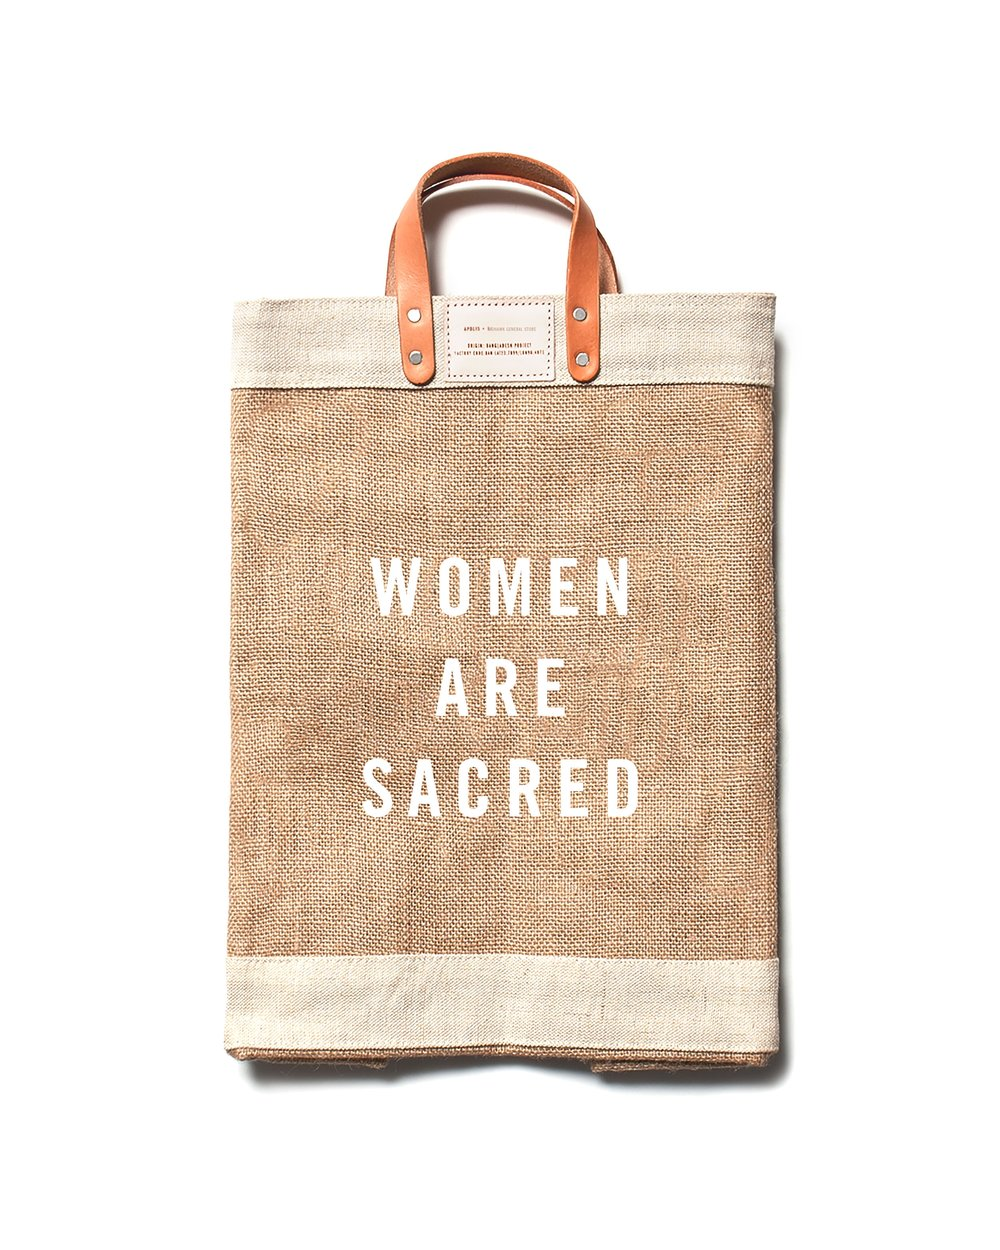 MARKET BAG | $68 -  As featured in the 2017 LA Times Gift Guide, the WOMEN ARE SACRED market bag collaboration between socially conscious brands Our Sacred Women and Apolis is timely for those wanting to give a gift with substance. The powerful message aside, these 100% jute fiber, waterproof bags are handcrafted in Bangladesh by a growing female artisan cooperative, and 10% of proceeds from each sale is donated to The Breathe Network to support survivors of sexual violence. This is just one of several signature products by Our Sacred Women - a movement to restore women to a place of reverence through specialty gifts that help women feel seen, valued, and honored.